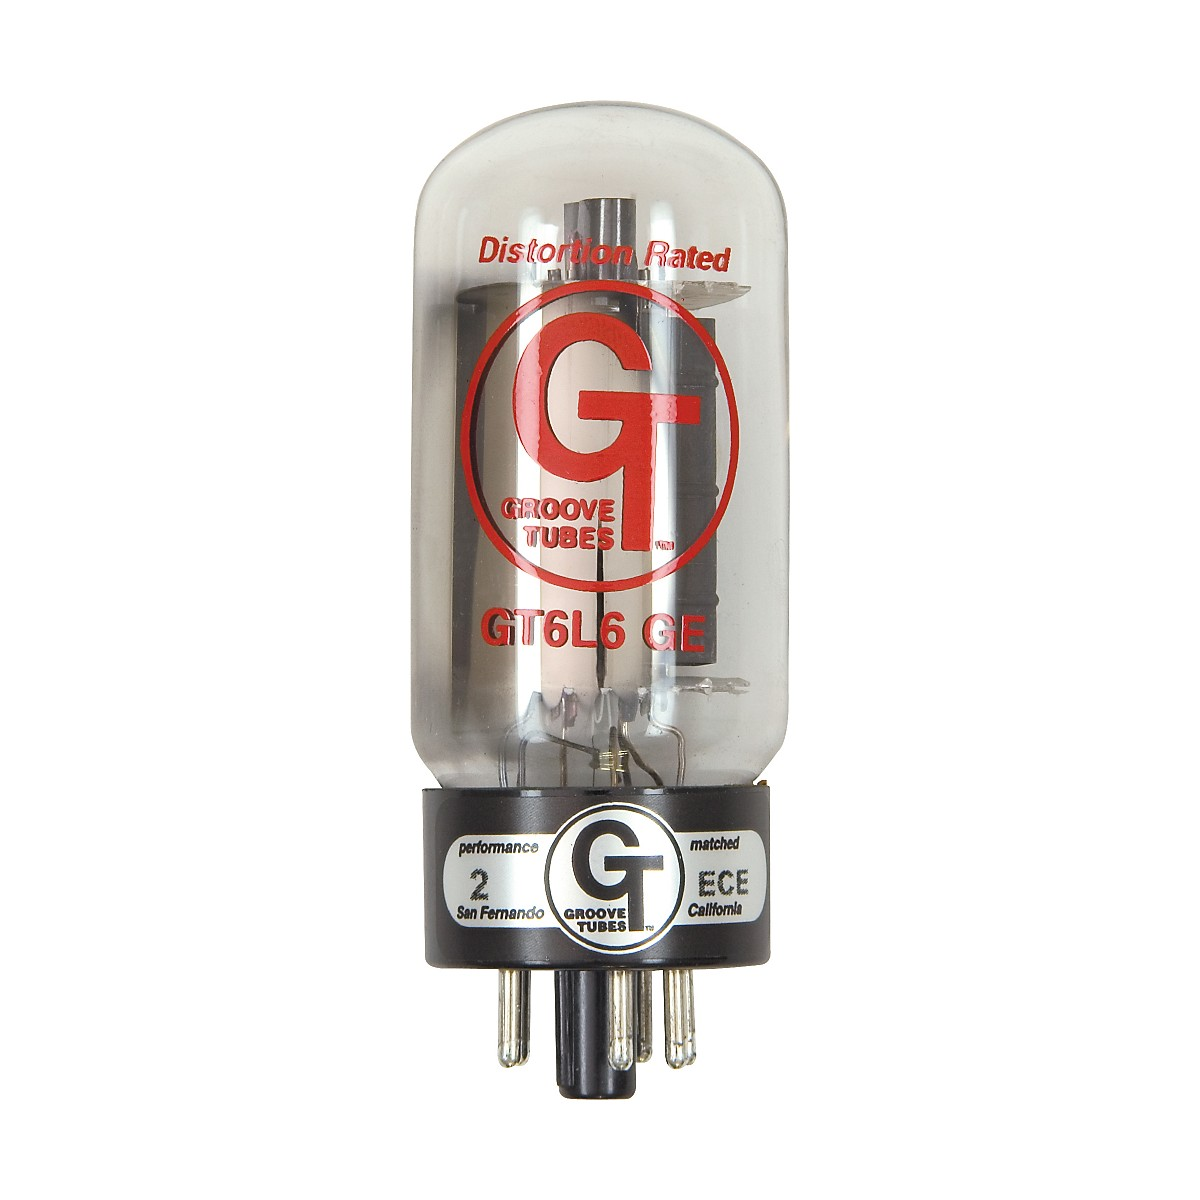 Groove Tubes Gold Series GT-6L6-GE Matched Power Tubes